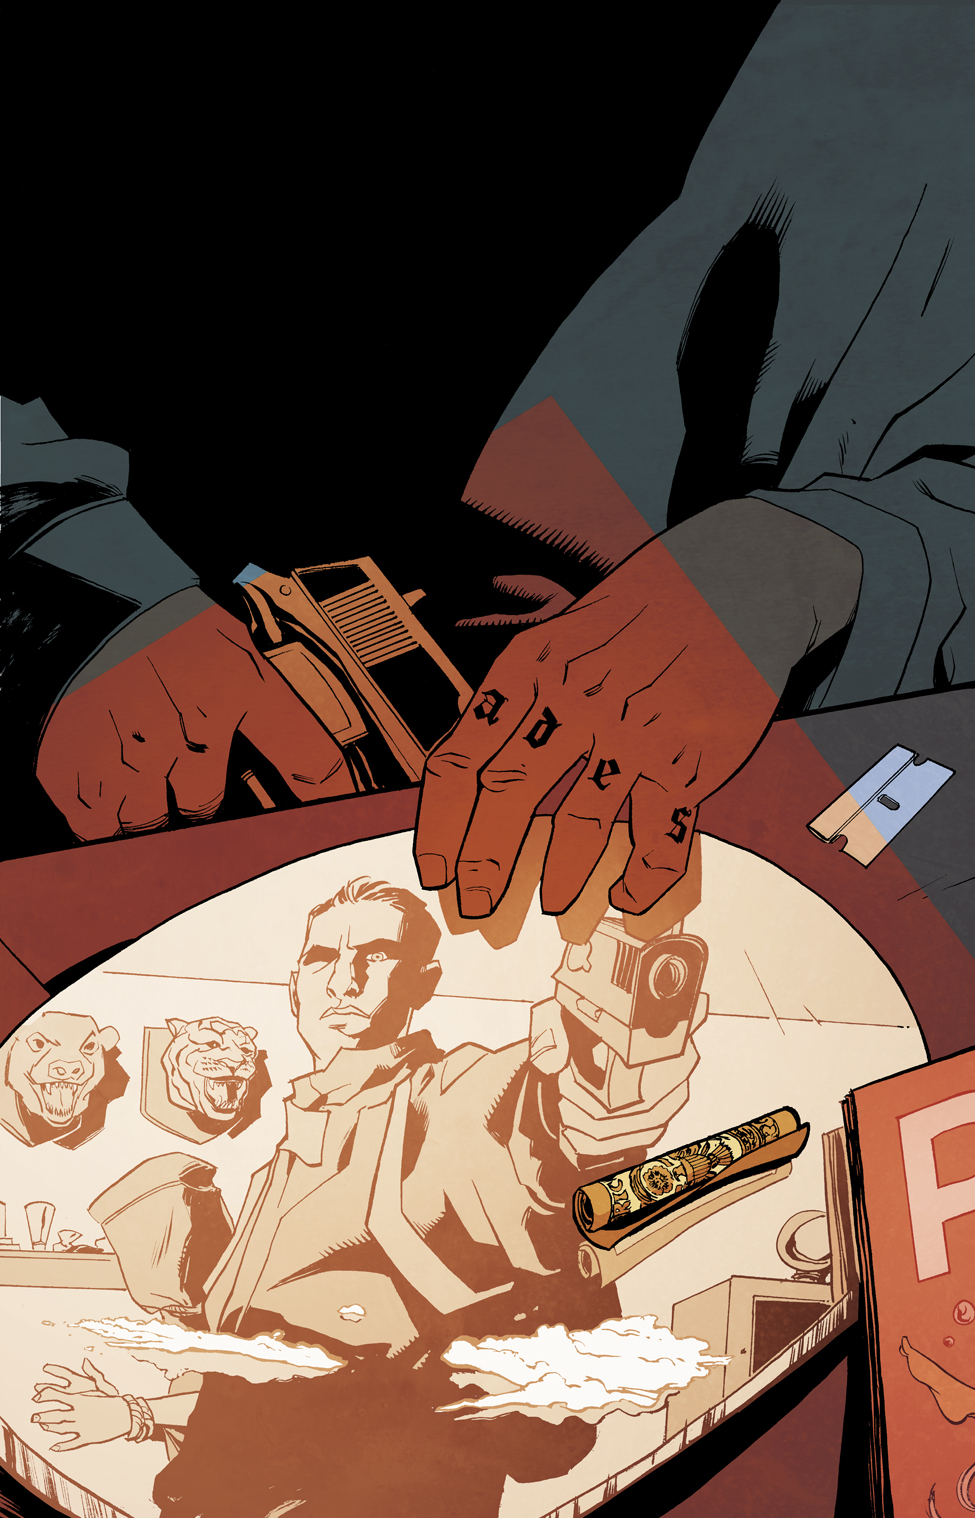 danieljlogan :     #ThrowbackThursday    ryanklindsay :      Ghost Town #3 In July Solicitations       Ghost Town #3 is in the July Previews catalogue. The action thriller title by Daniel J Logan and me…      View Post        Hey, cool! I always liked this cover a lot- whoajordie  killed it with the colors, really sharpened up the design with how she laid down that red.